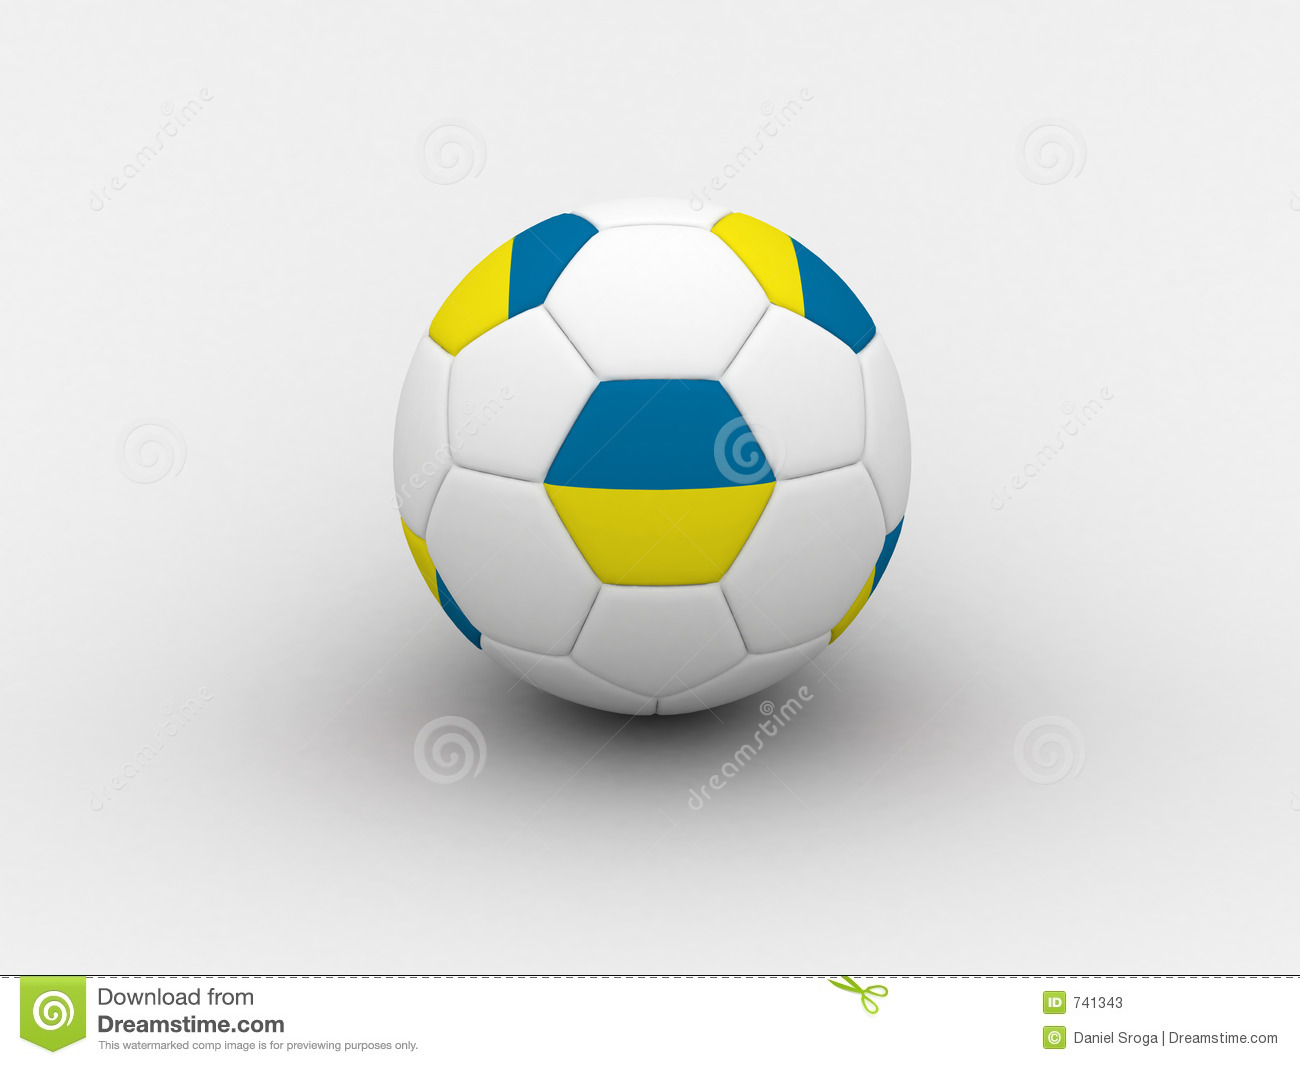 Bille de football de l Ukraine